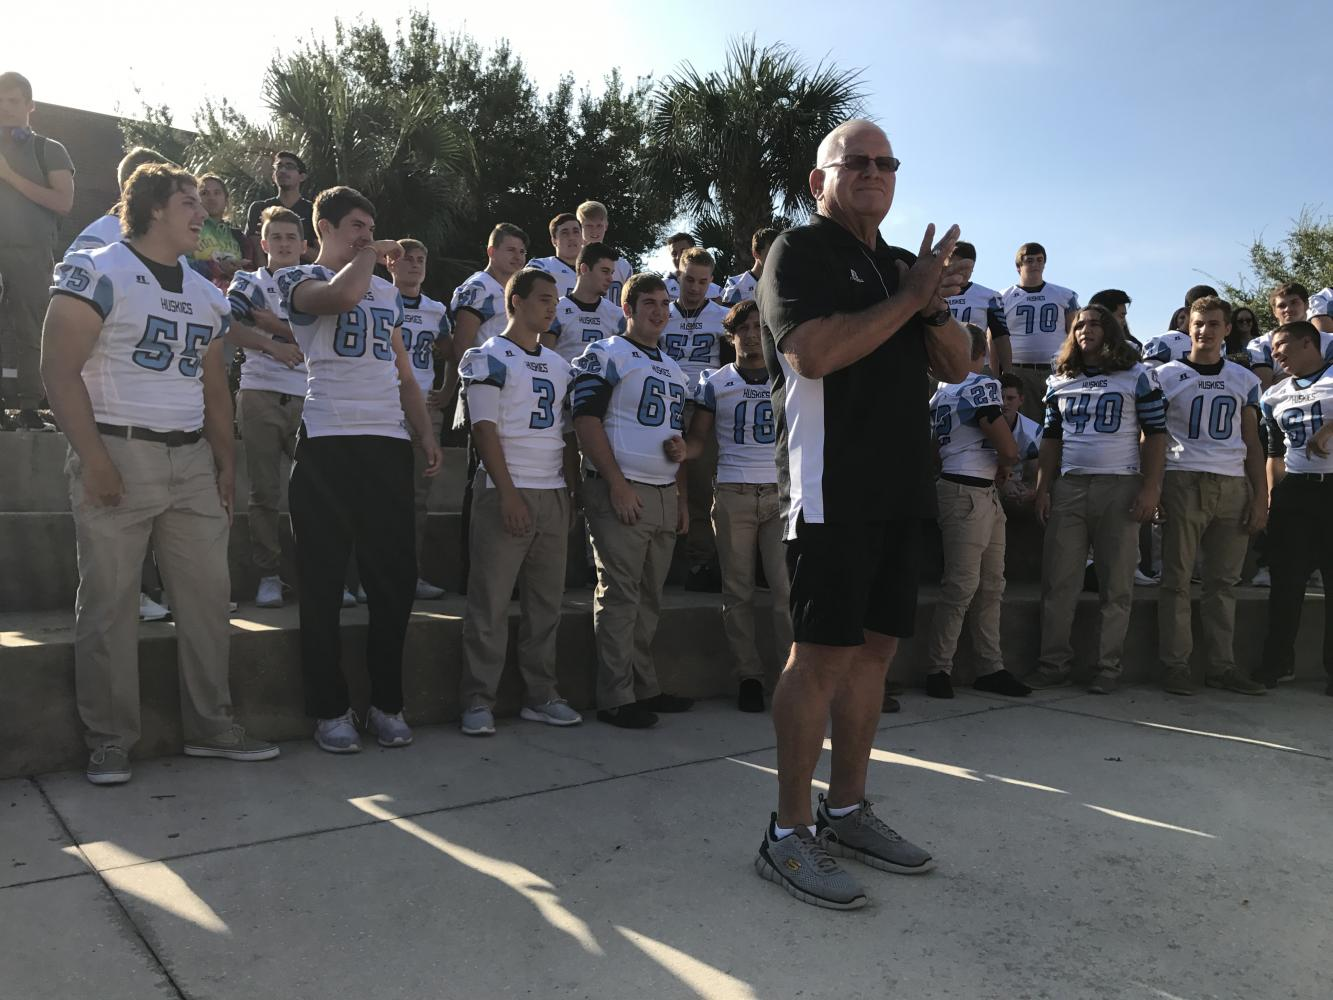 Head coach Phil Ziglar stands with the football team in the amphitheater during the mini-pep rally. They take on Oviedo Thursday at 7 p.m.